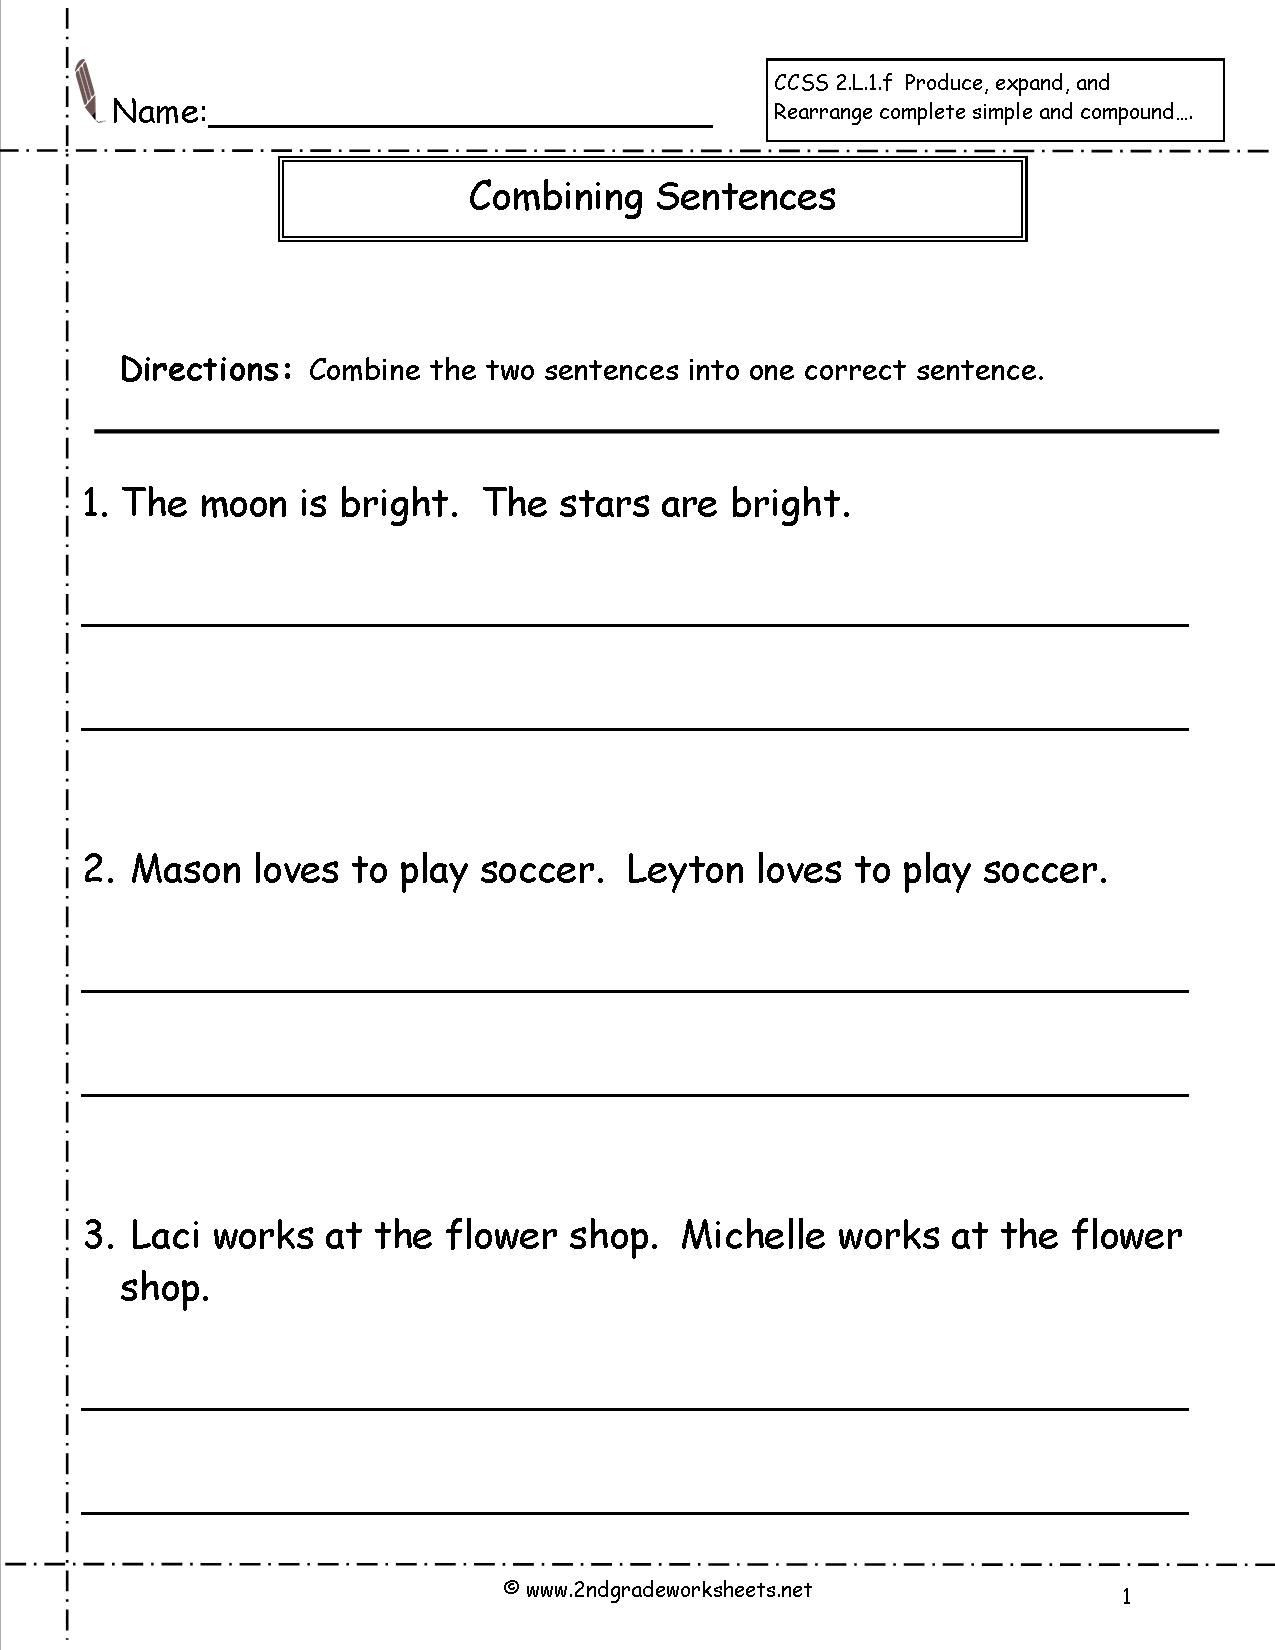 Topic Sentences Worksheets 3rd Grade Bining Sentences Worksheet